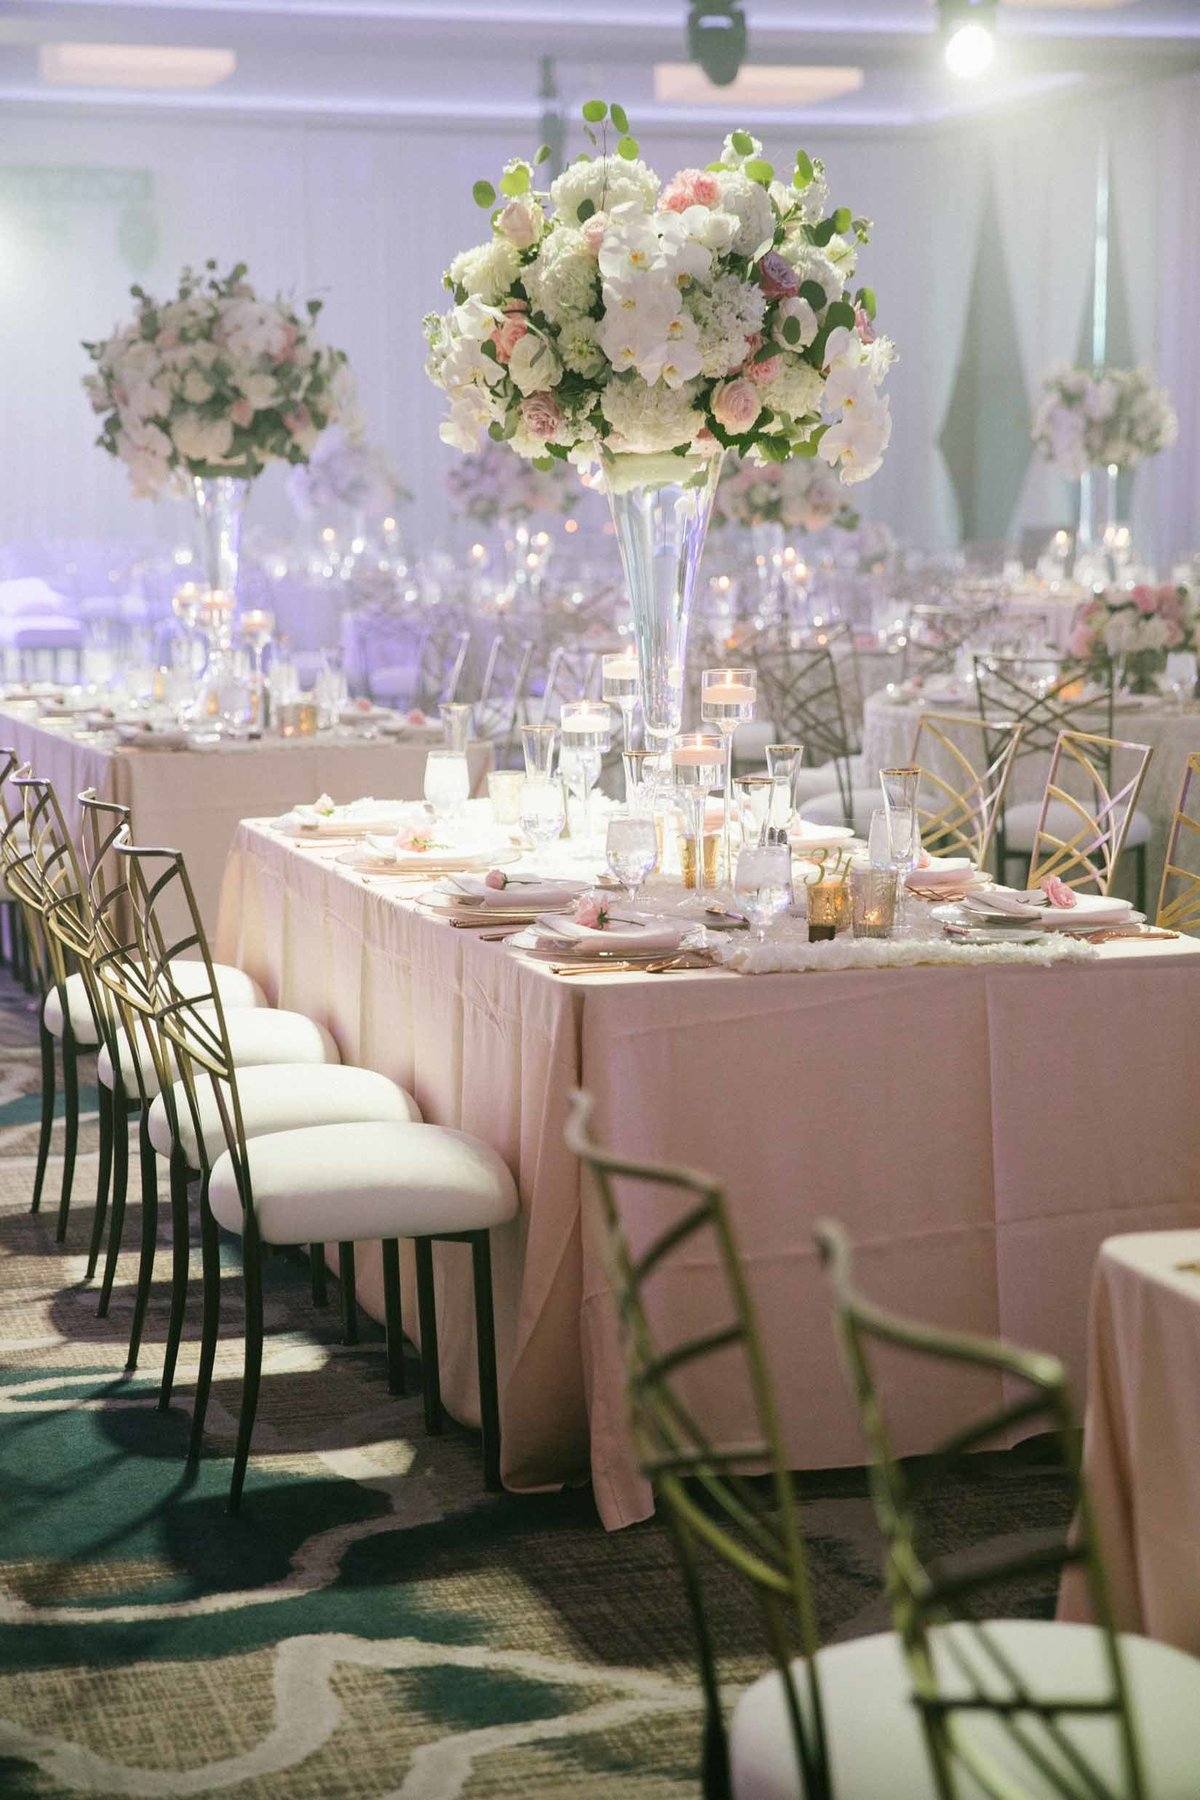 25Luxe-fusion-wedding-flora-nova-design